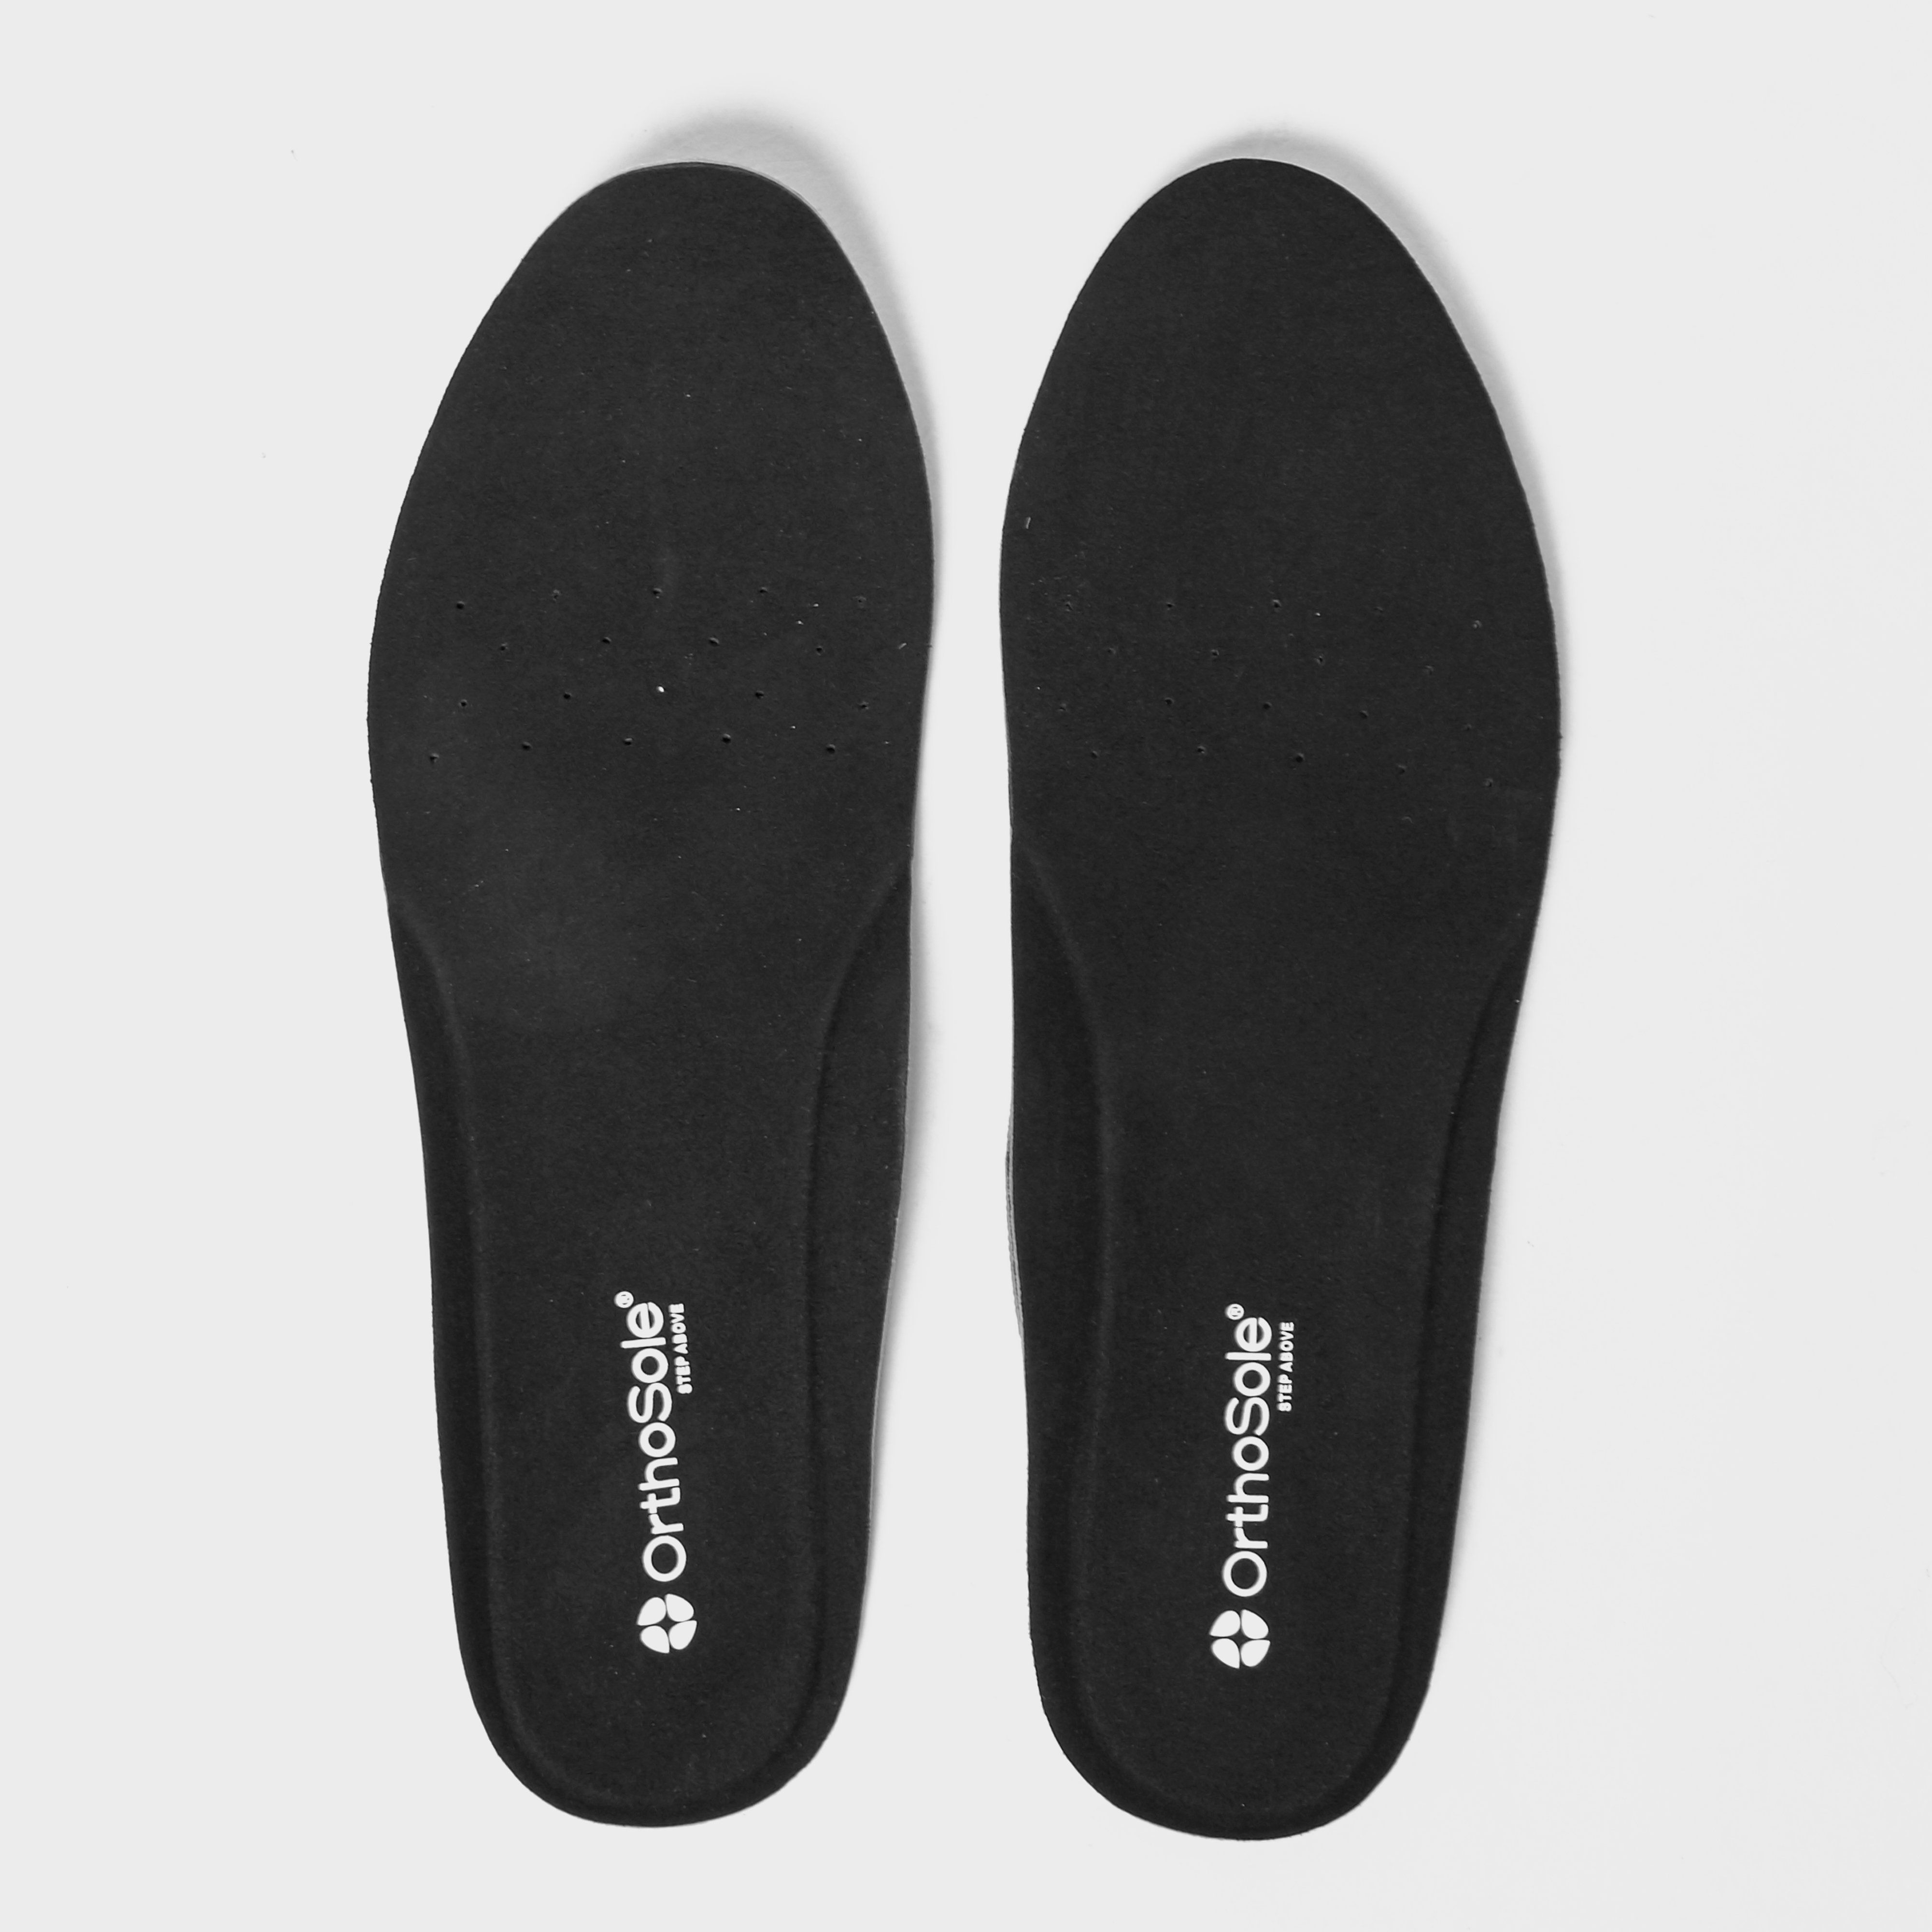 ORTHOSOLE Men's Thin Style Insoles